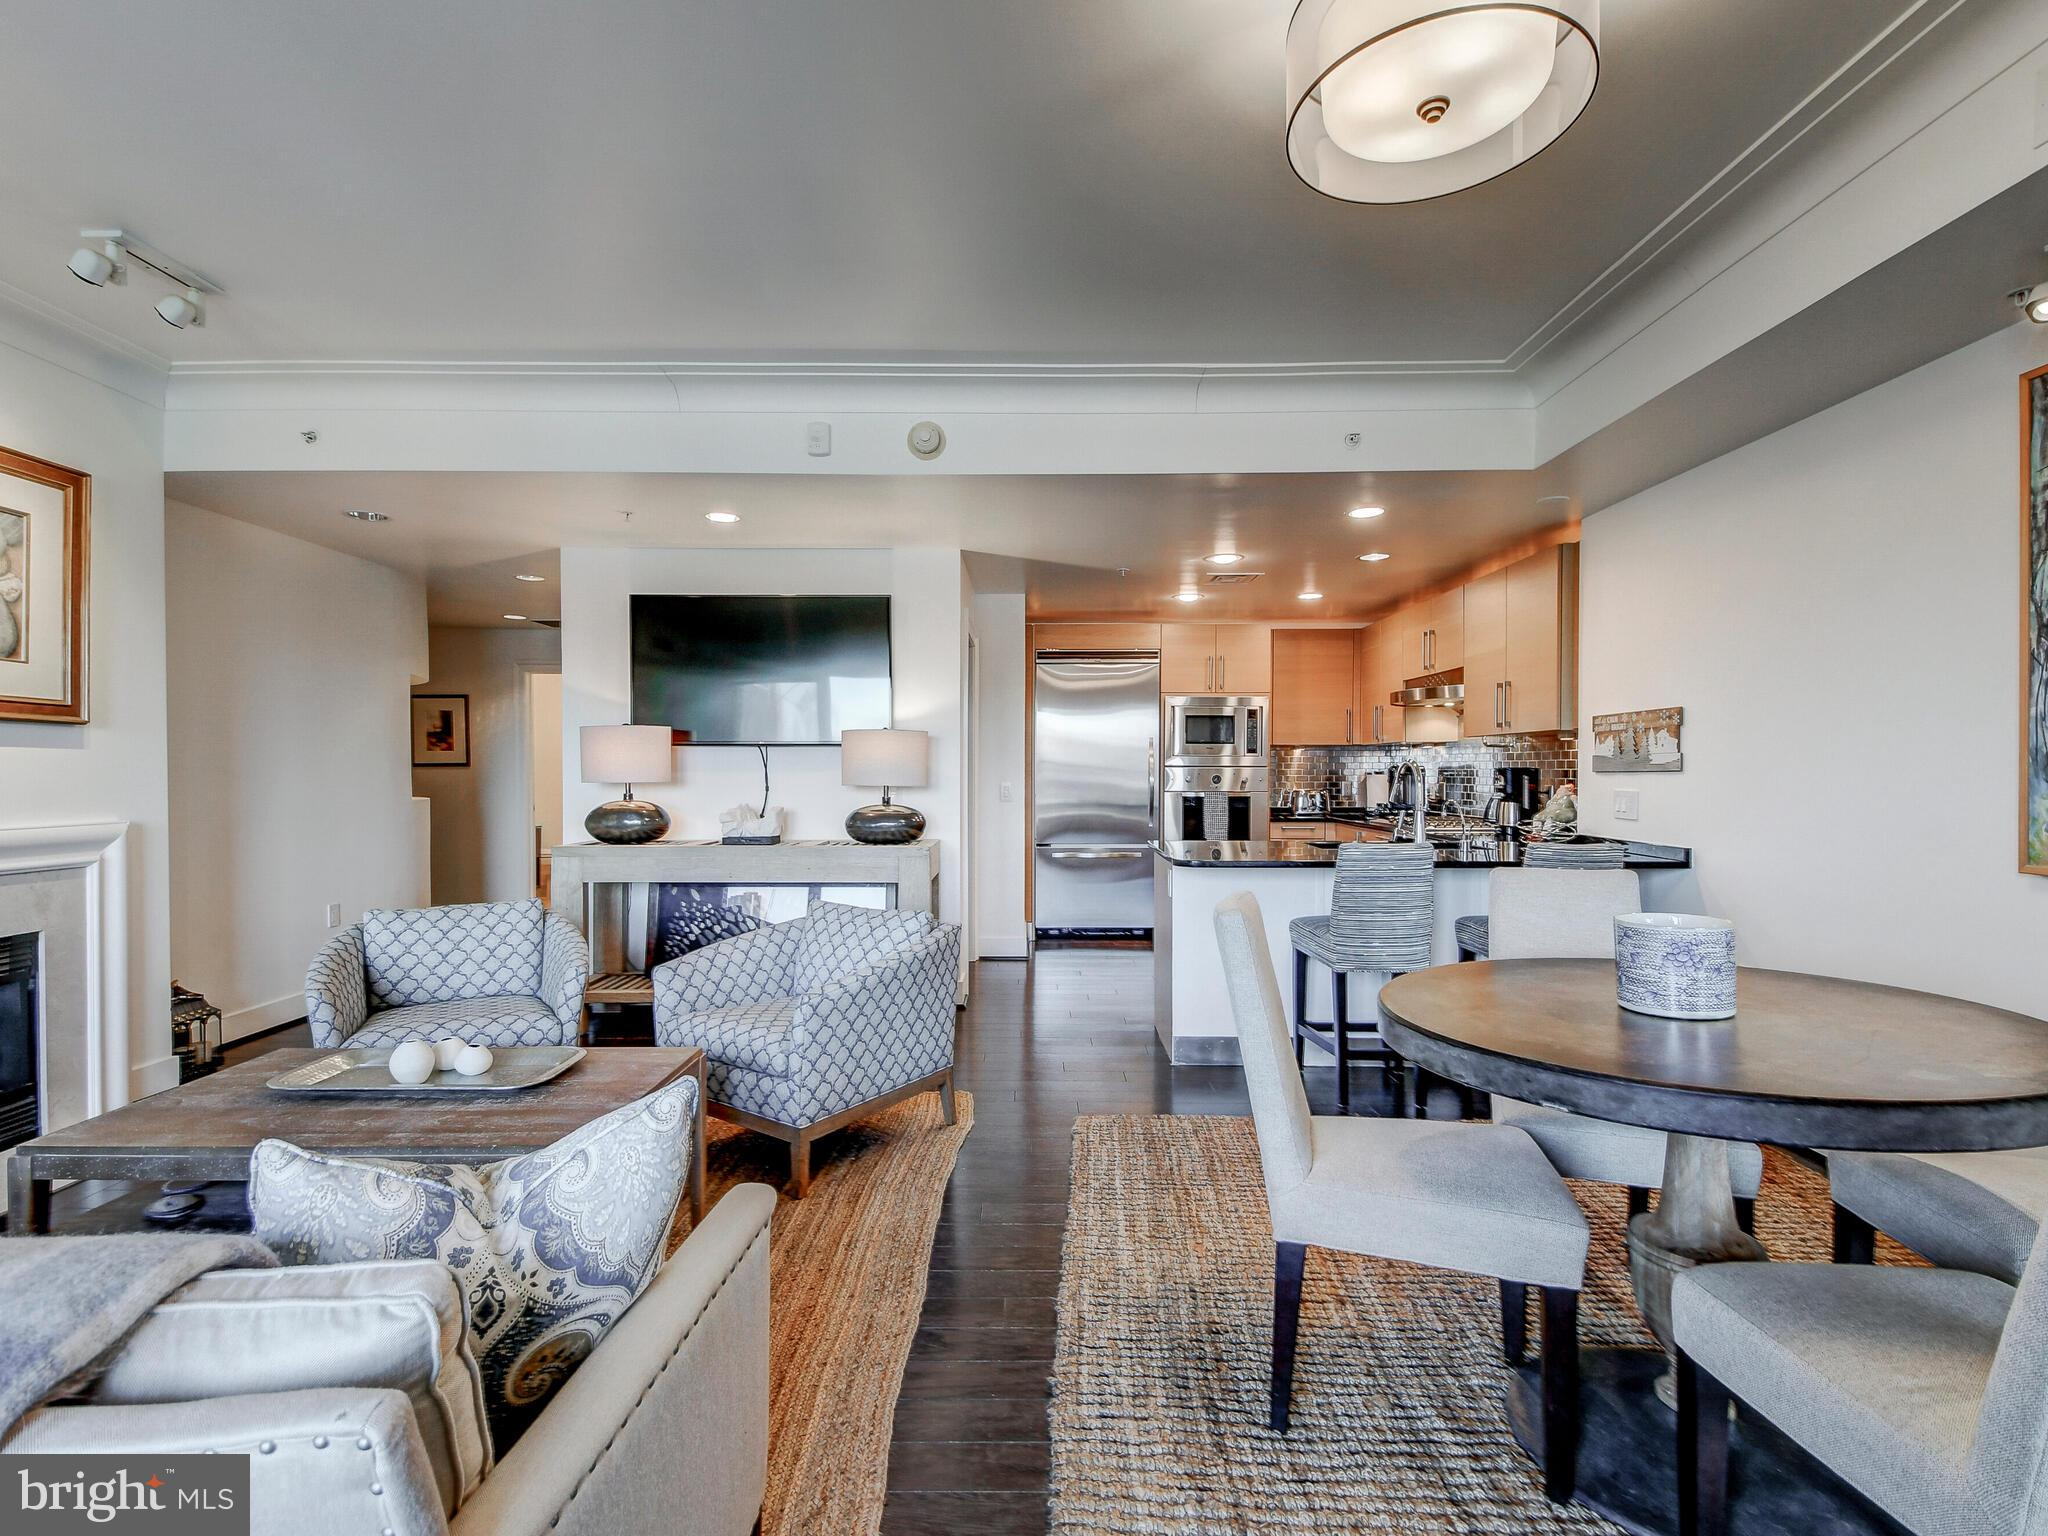 Fantastic opportunity to own a luxury Ritz-Carlton Inner Harbor 2 bedroom 2.5 bath condo with marina views.  Wide open light filled floor plan with high end appointments including Viking appliances, hardwood flooring and marble tile throughout, oversized contemporary moldings, and an extra large terrace. This condo shows like a model and has been impeccably maintained. Two car parking and additional storage convey.  Live the life of your dreams - pamper yourself with the most service oriented residence in the Baltimore metro area.  24/7 Ritz-Carlton trained concierge, uniformed doorman, complementary valet parking for you  and your guests, porters to deliver packages, on-site maintenance staff, security, and two acres of manicured waterfront gardens. The Ritz-Carlton Residences also includes a resident only 30 seat theater, game and billiards room, resident lounge and boardroom at no additional expense.  Six guest suites are available to resident guests at a nominal nightly fee.  There is nothing like this in Baltimore.  Come see what a Ritz-Carlton lifestyle can be.